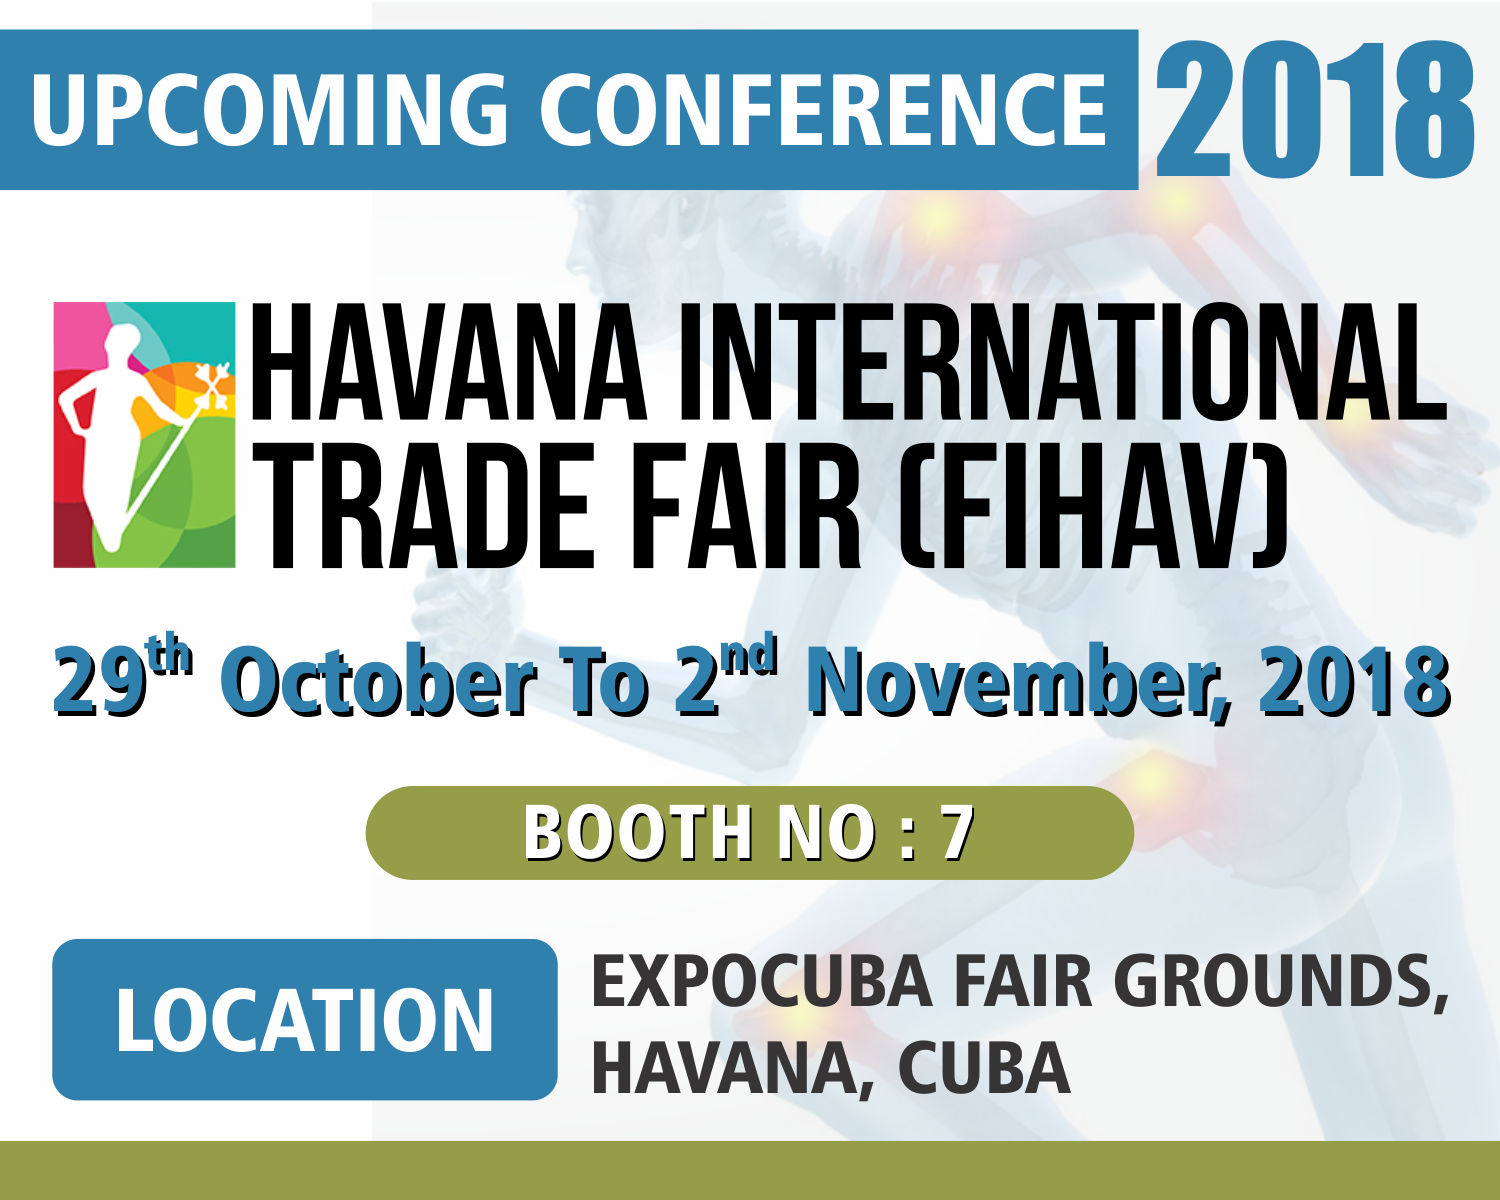 HAVANA INTERNATIONAL TRADE FAIR (FIHAV)